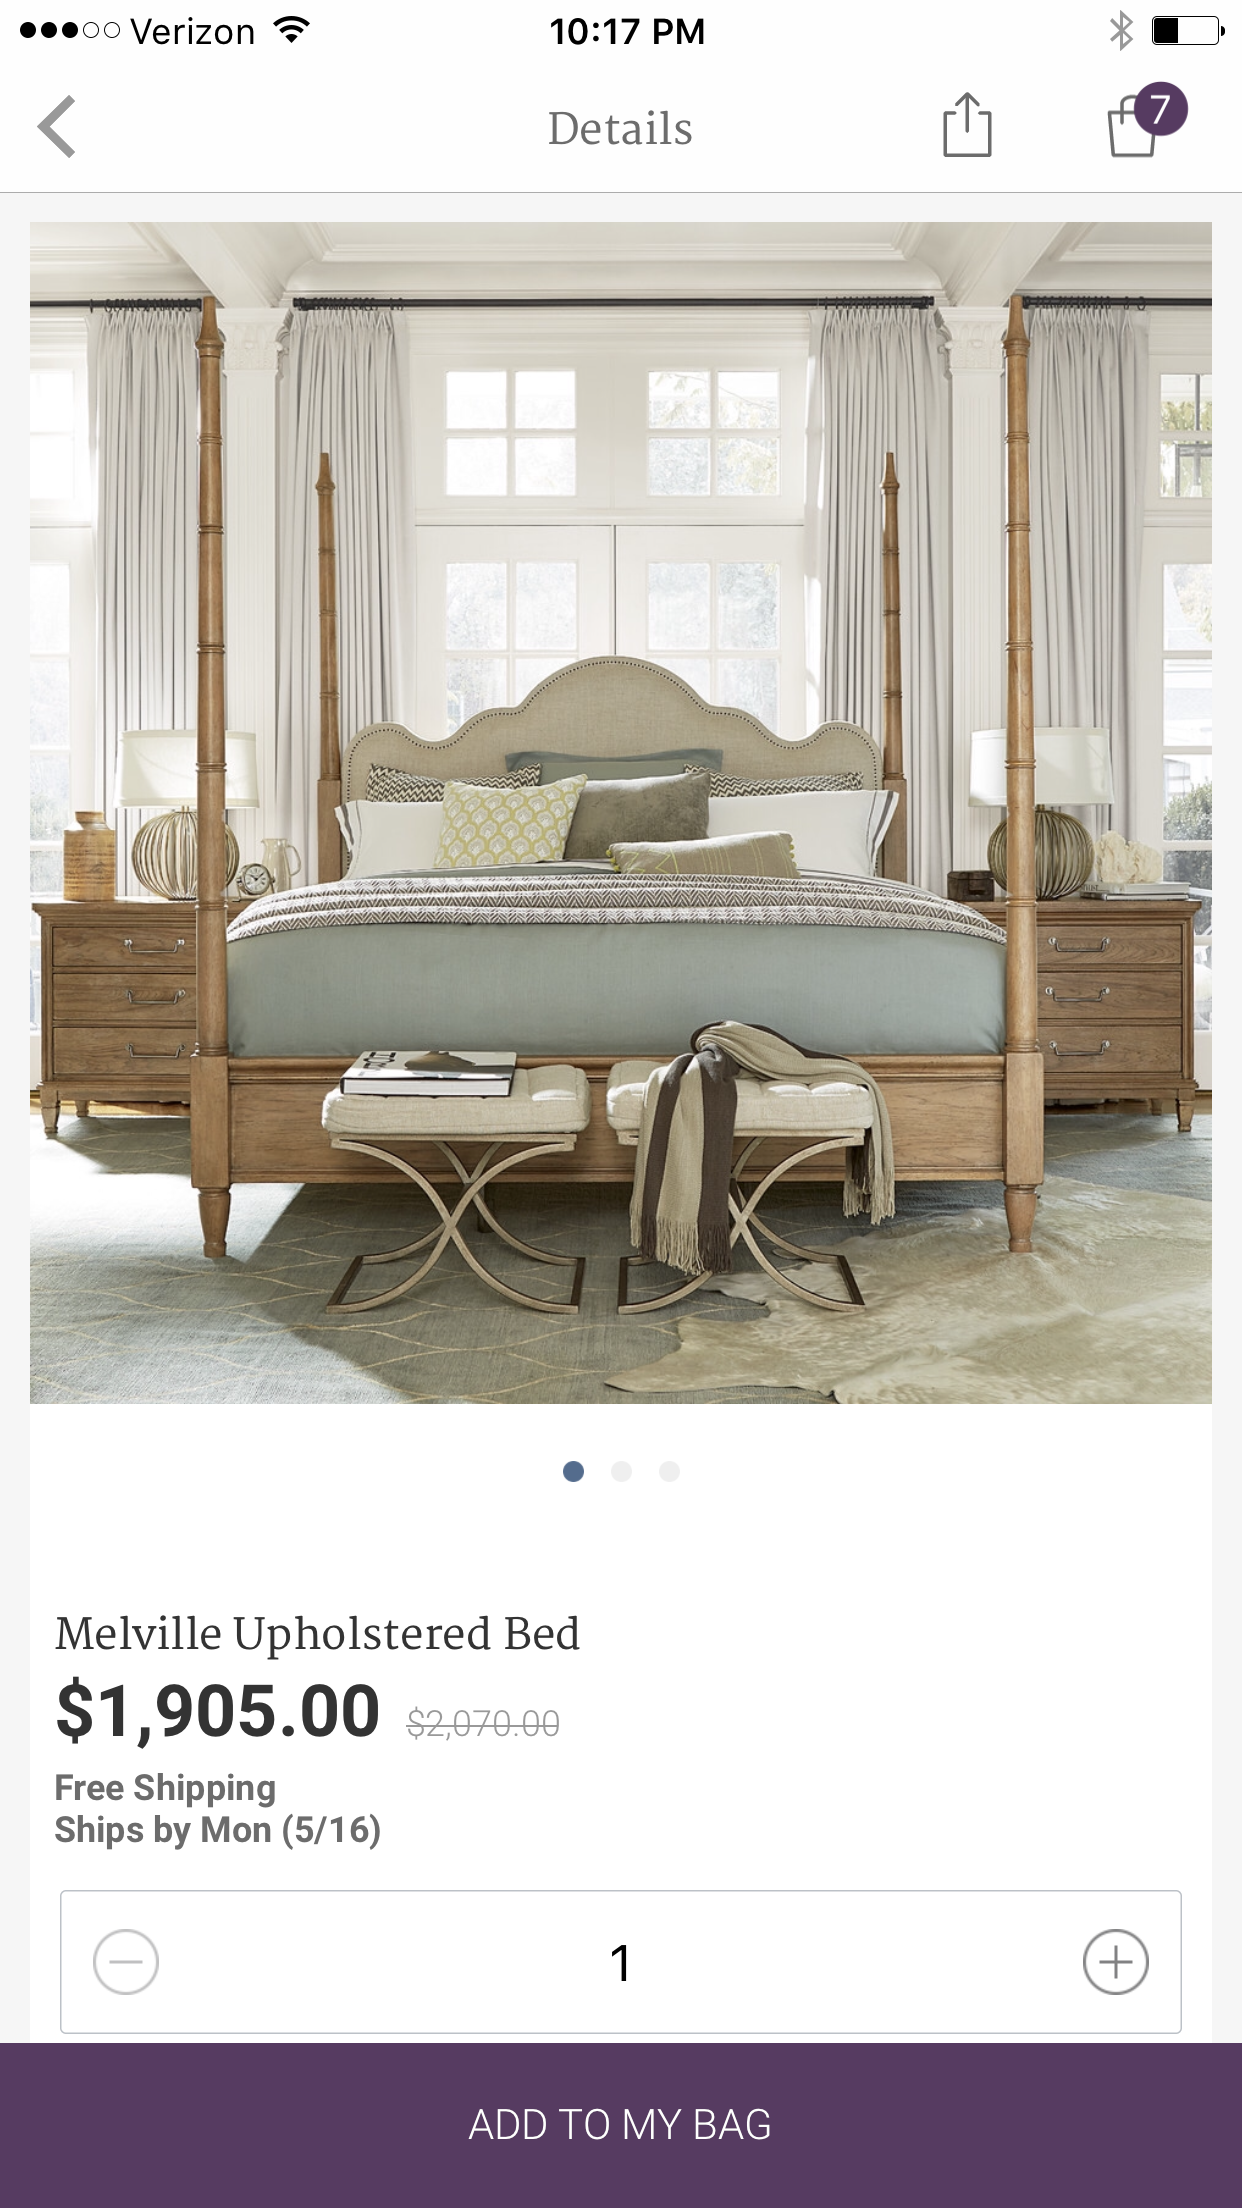 From $1900 to $1000 savings on this upholserted poster bed!